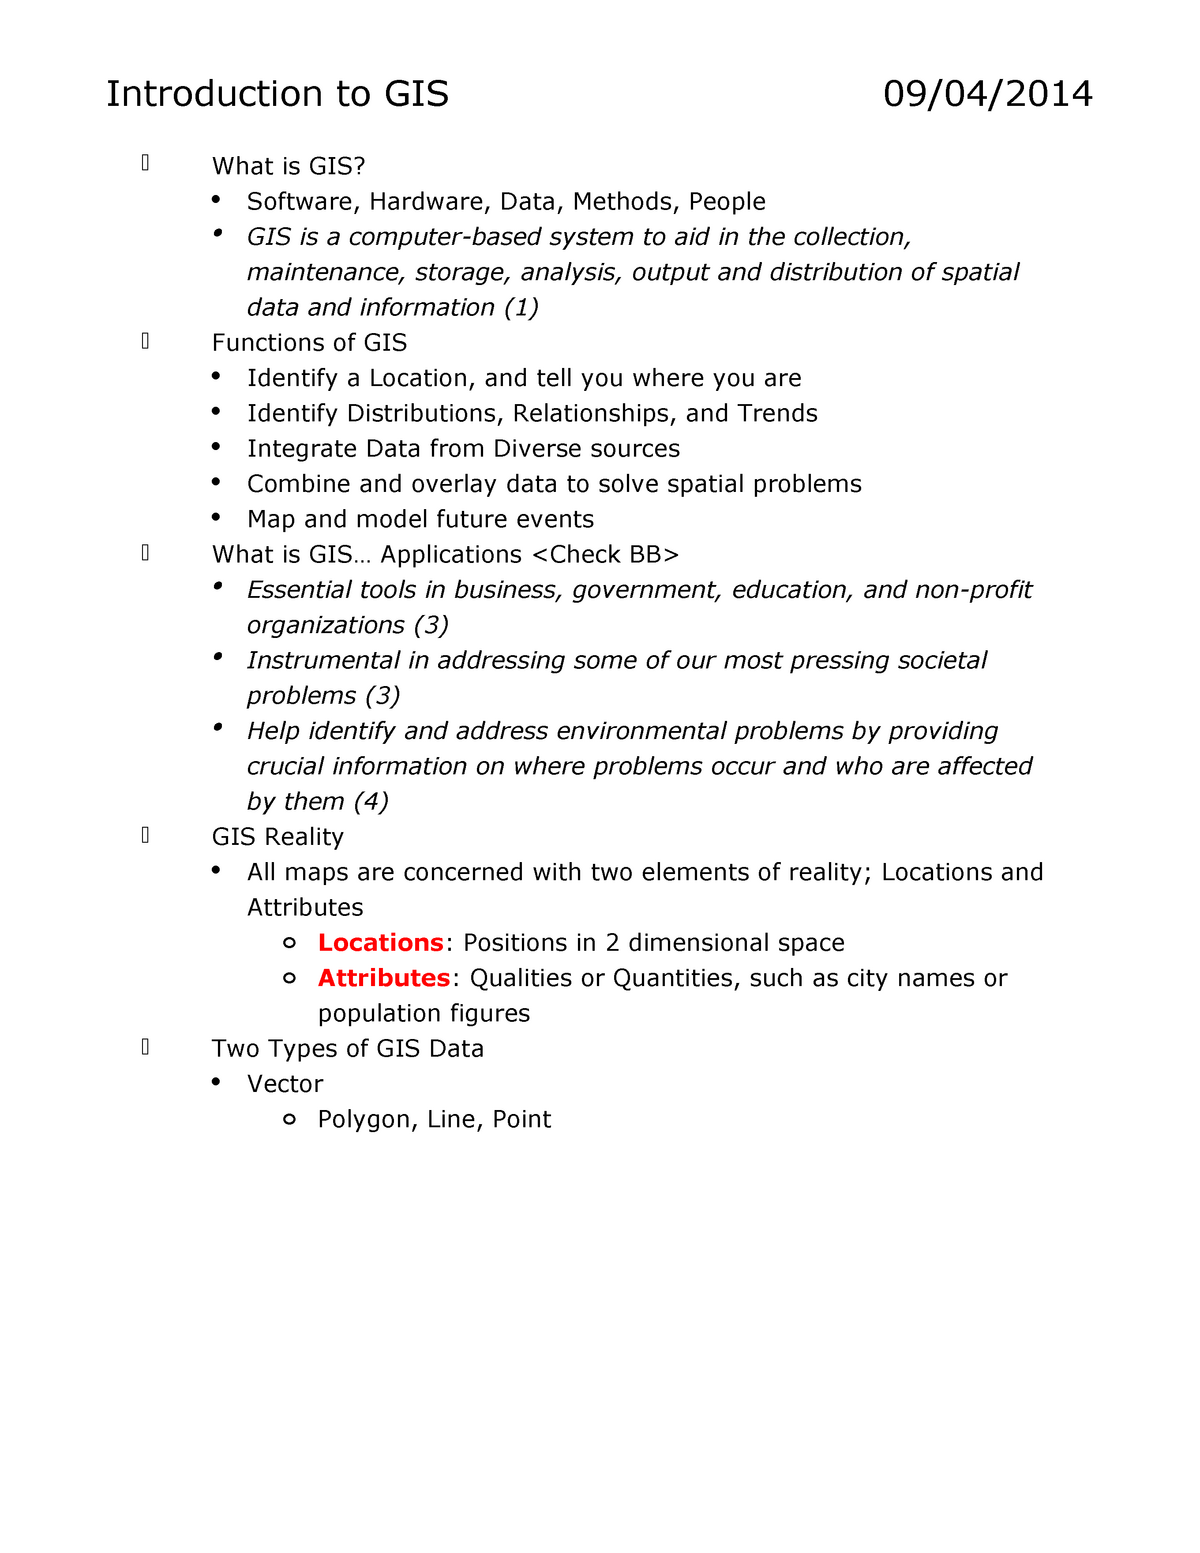 GIS - Lecture notes All - GEOG 106 - GWU - StuDocu